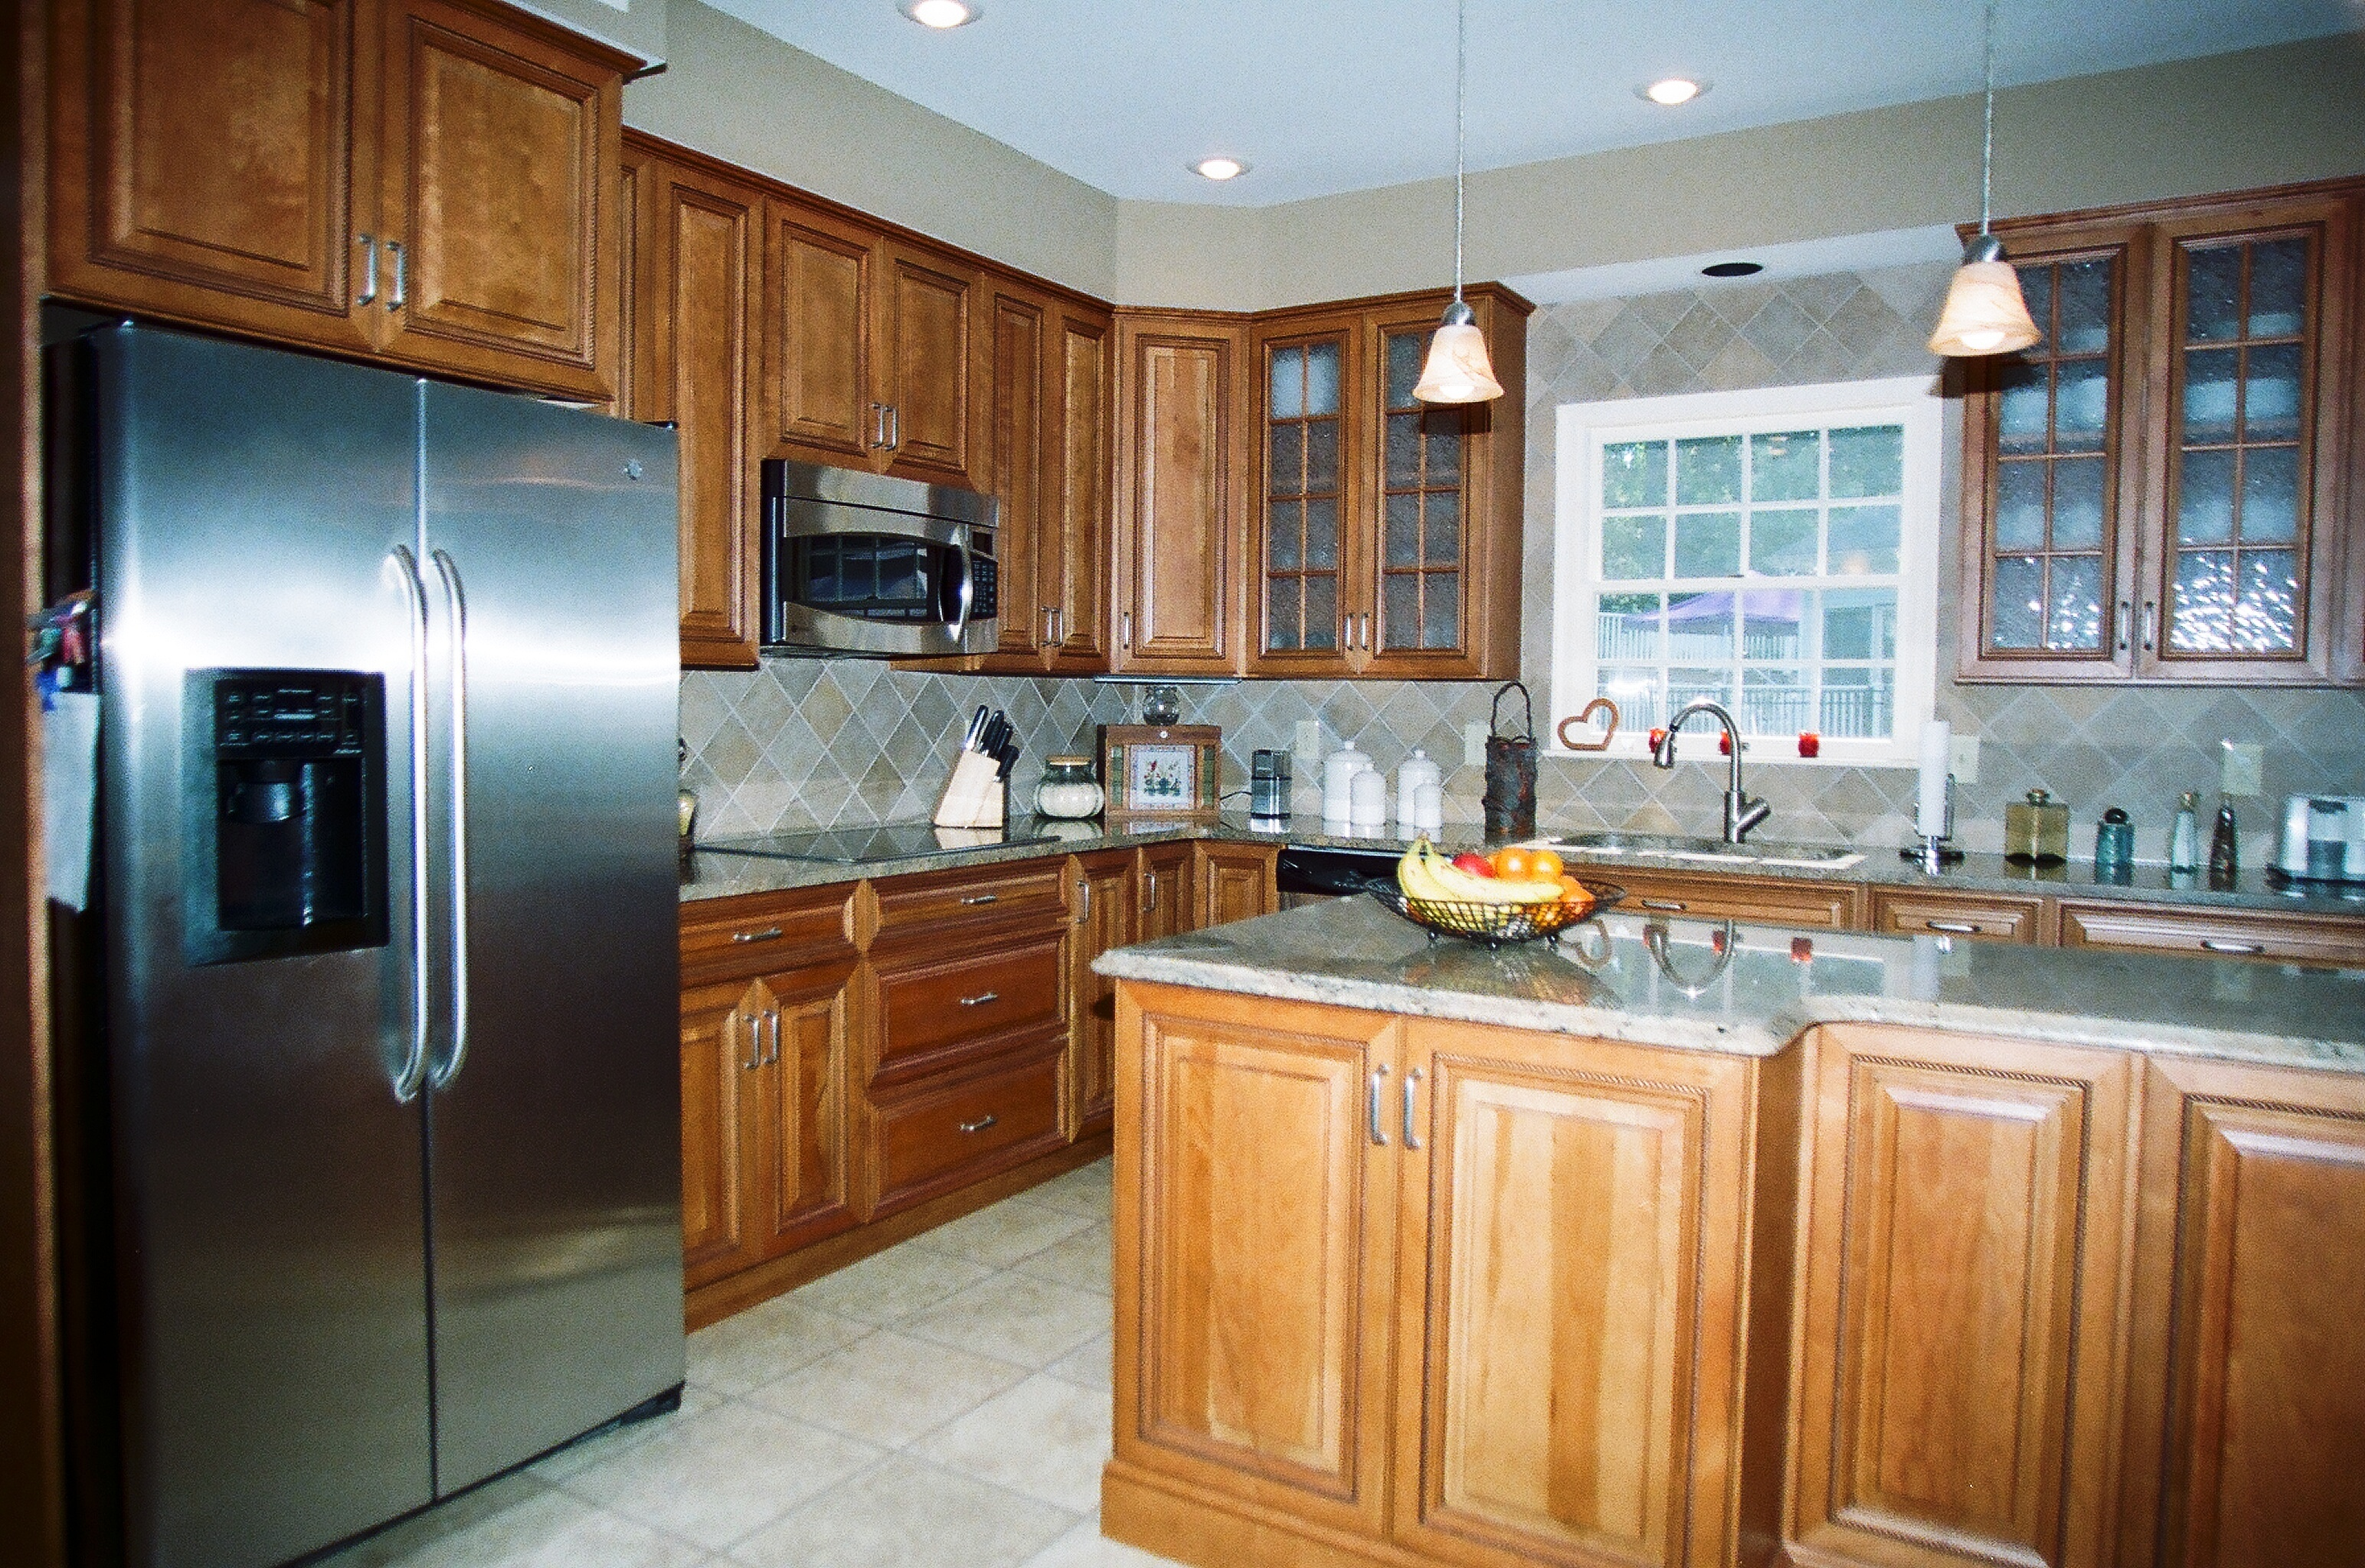 American Kitchen Concepts Inc Columbia Md 21045 Angies List